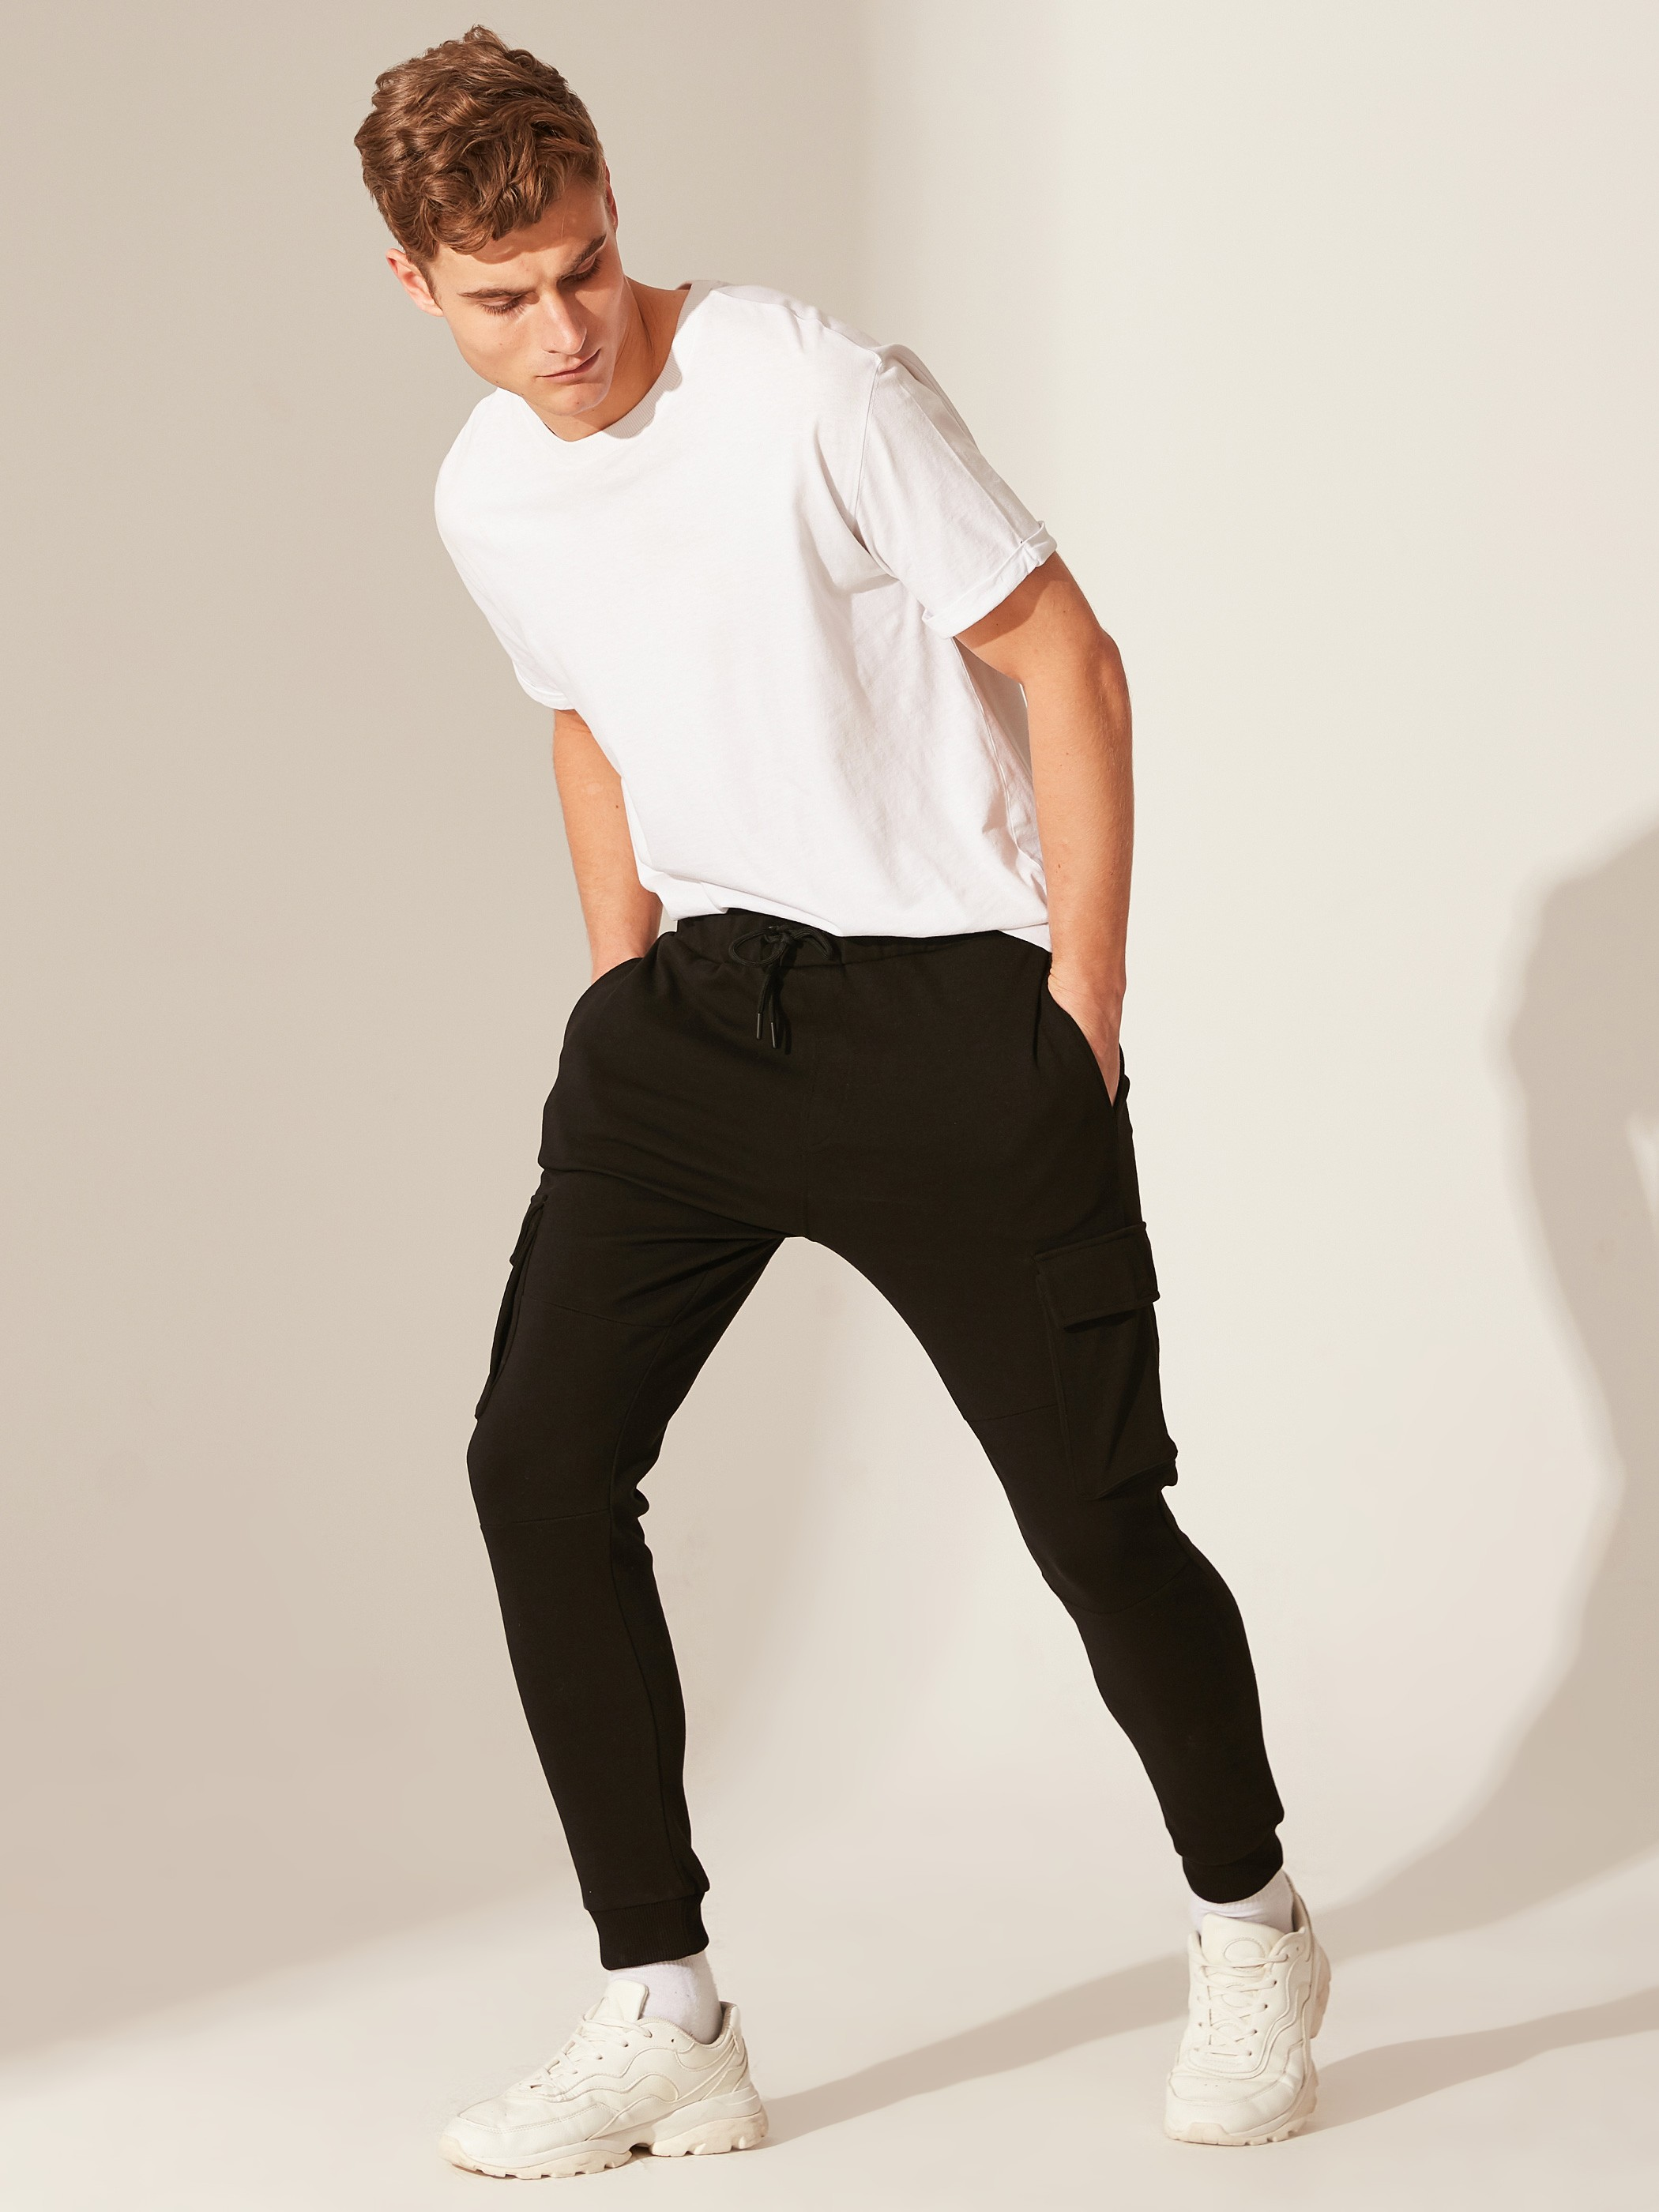 BLACK - Sweatpants - 0SI449Z8